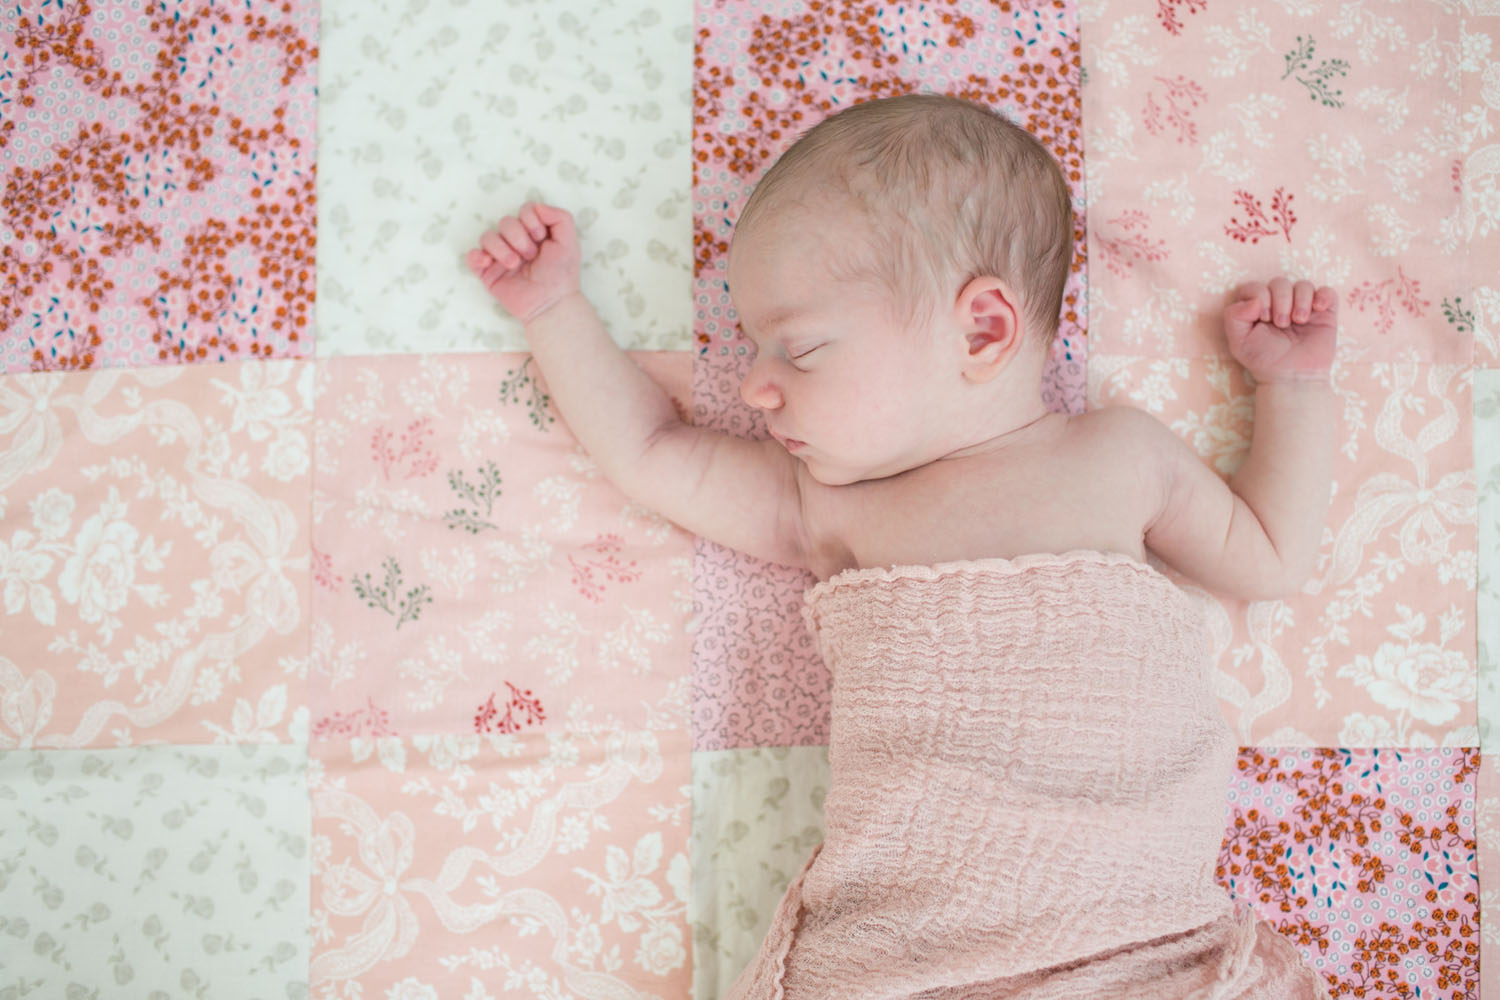 Washington-DC-newborn-photographer-Sydney-blog-0022.jpg